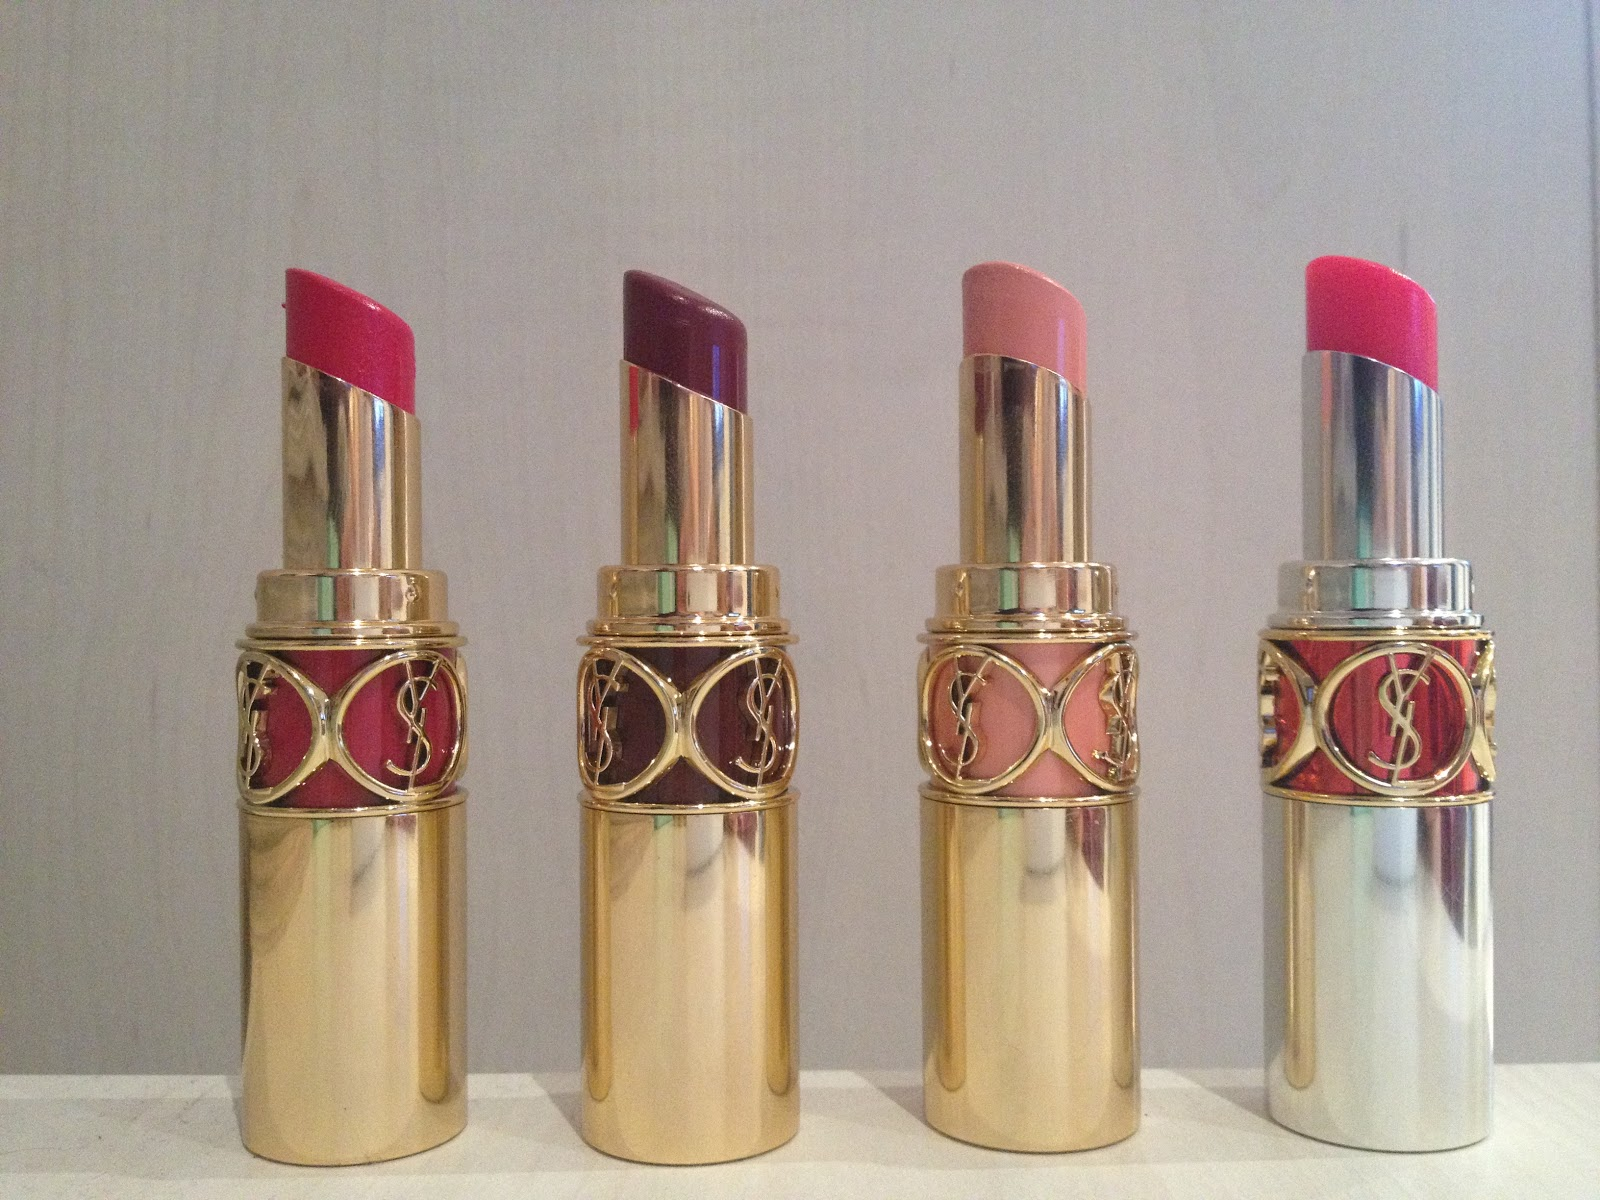 Serena Blogs Beauty: Quick Review: Yves Saint Laurent Lipsticks